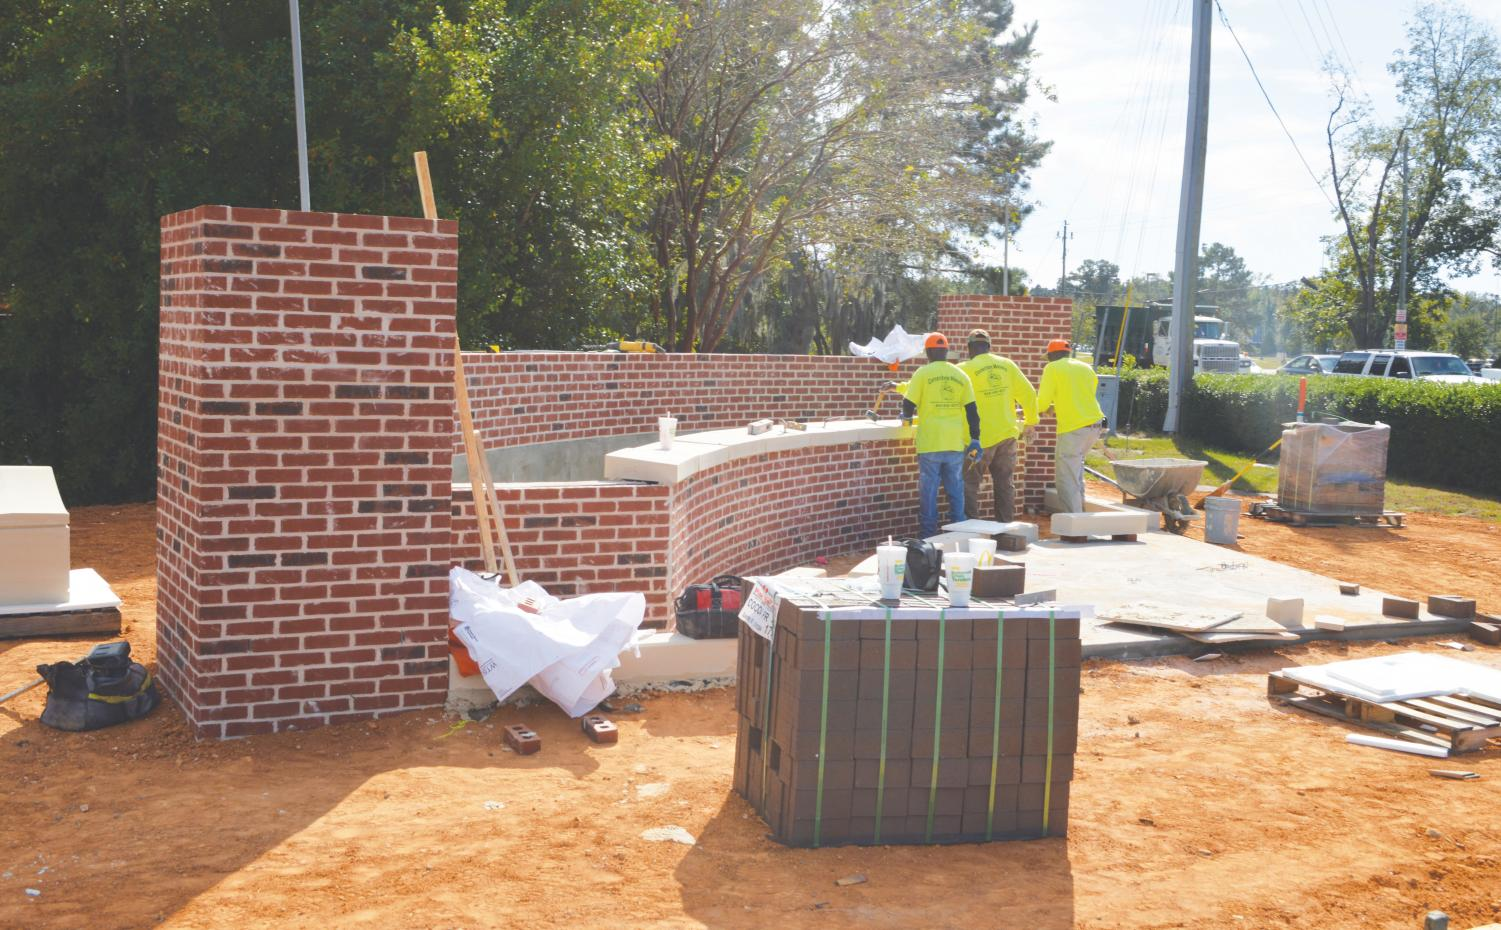 FMU is building a new sign to make the university more noticeable to passersby and welcoming to the FMU community. The new sign will feature water fountains.